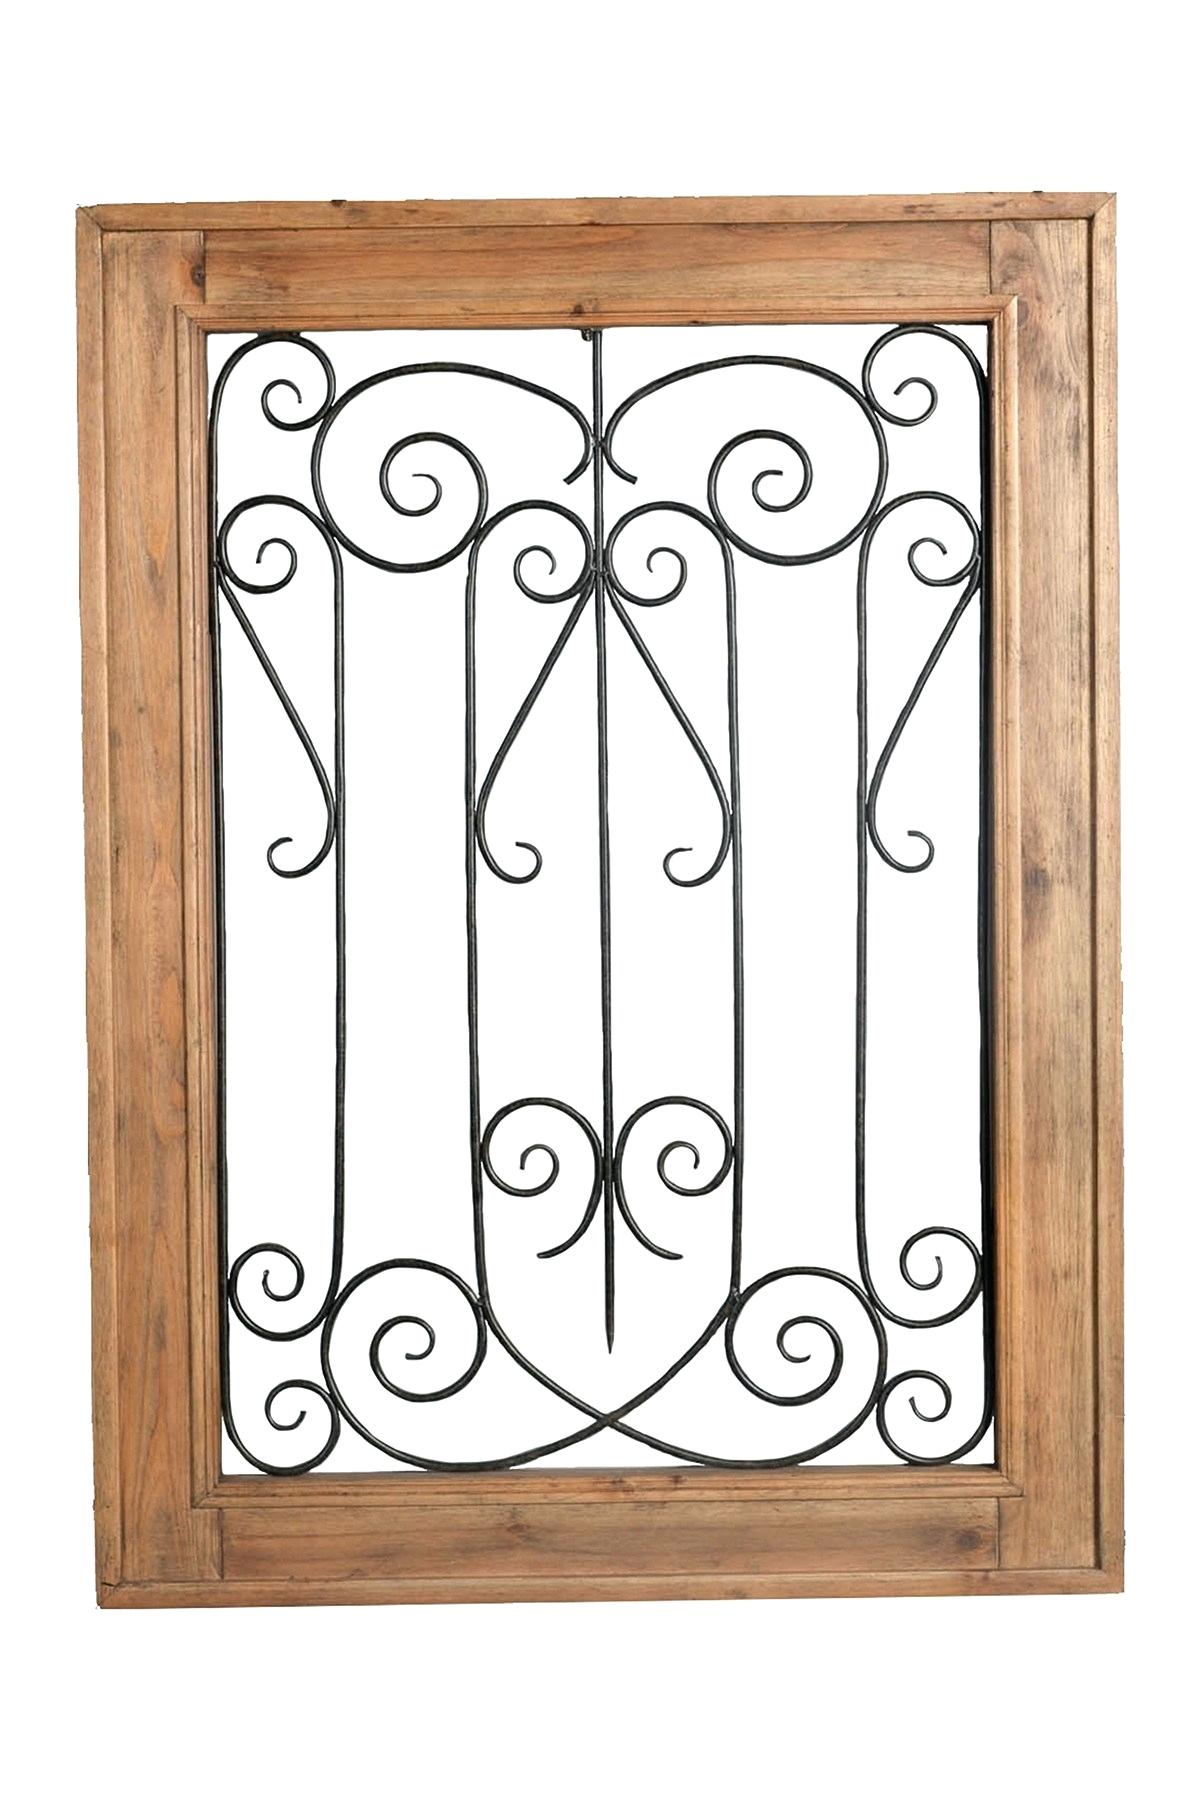 Wood Scroll Wall Decor – Faptitans.co in Ornate Scroll Wall Decor (Image 28 of 30)